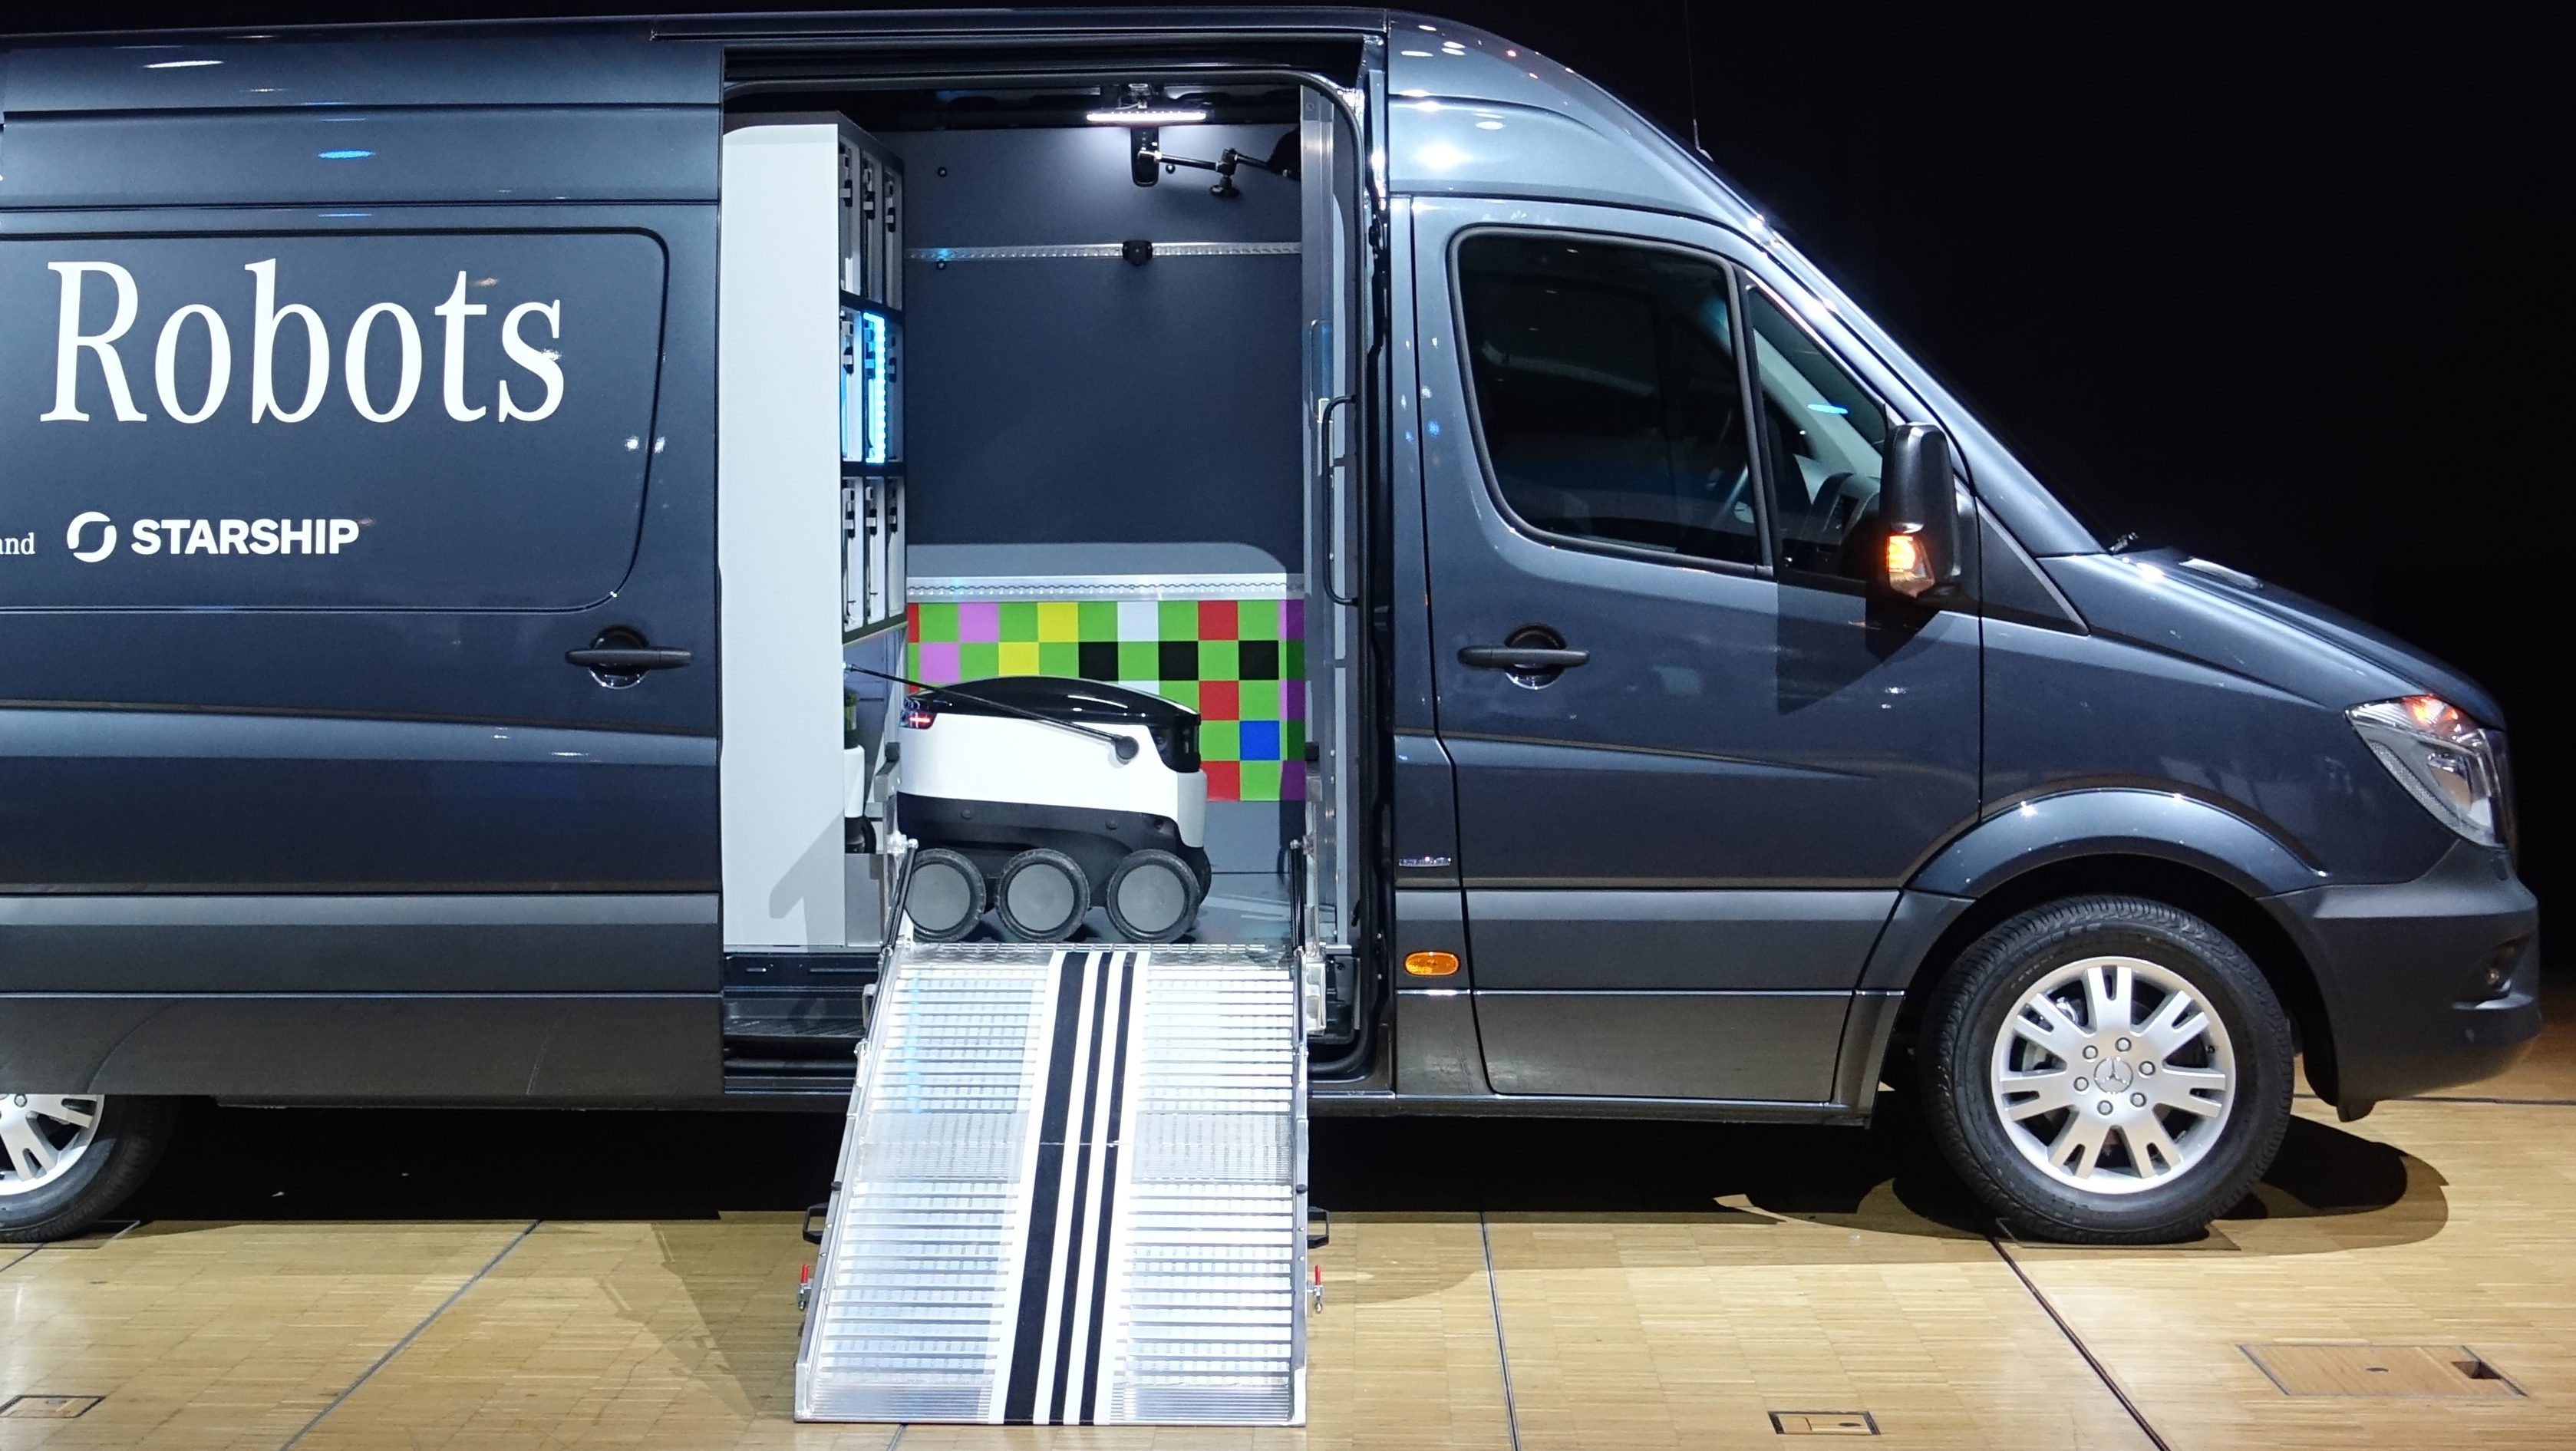 Mercedes delivery van for Starship robots